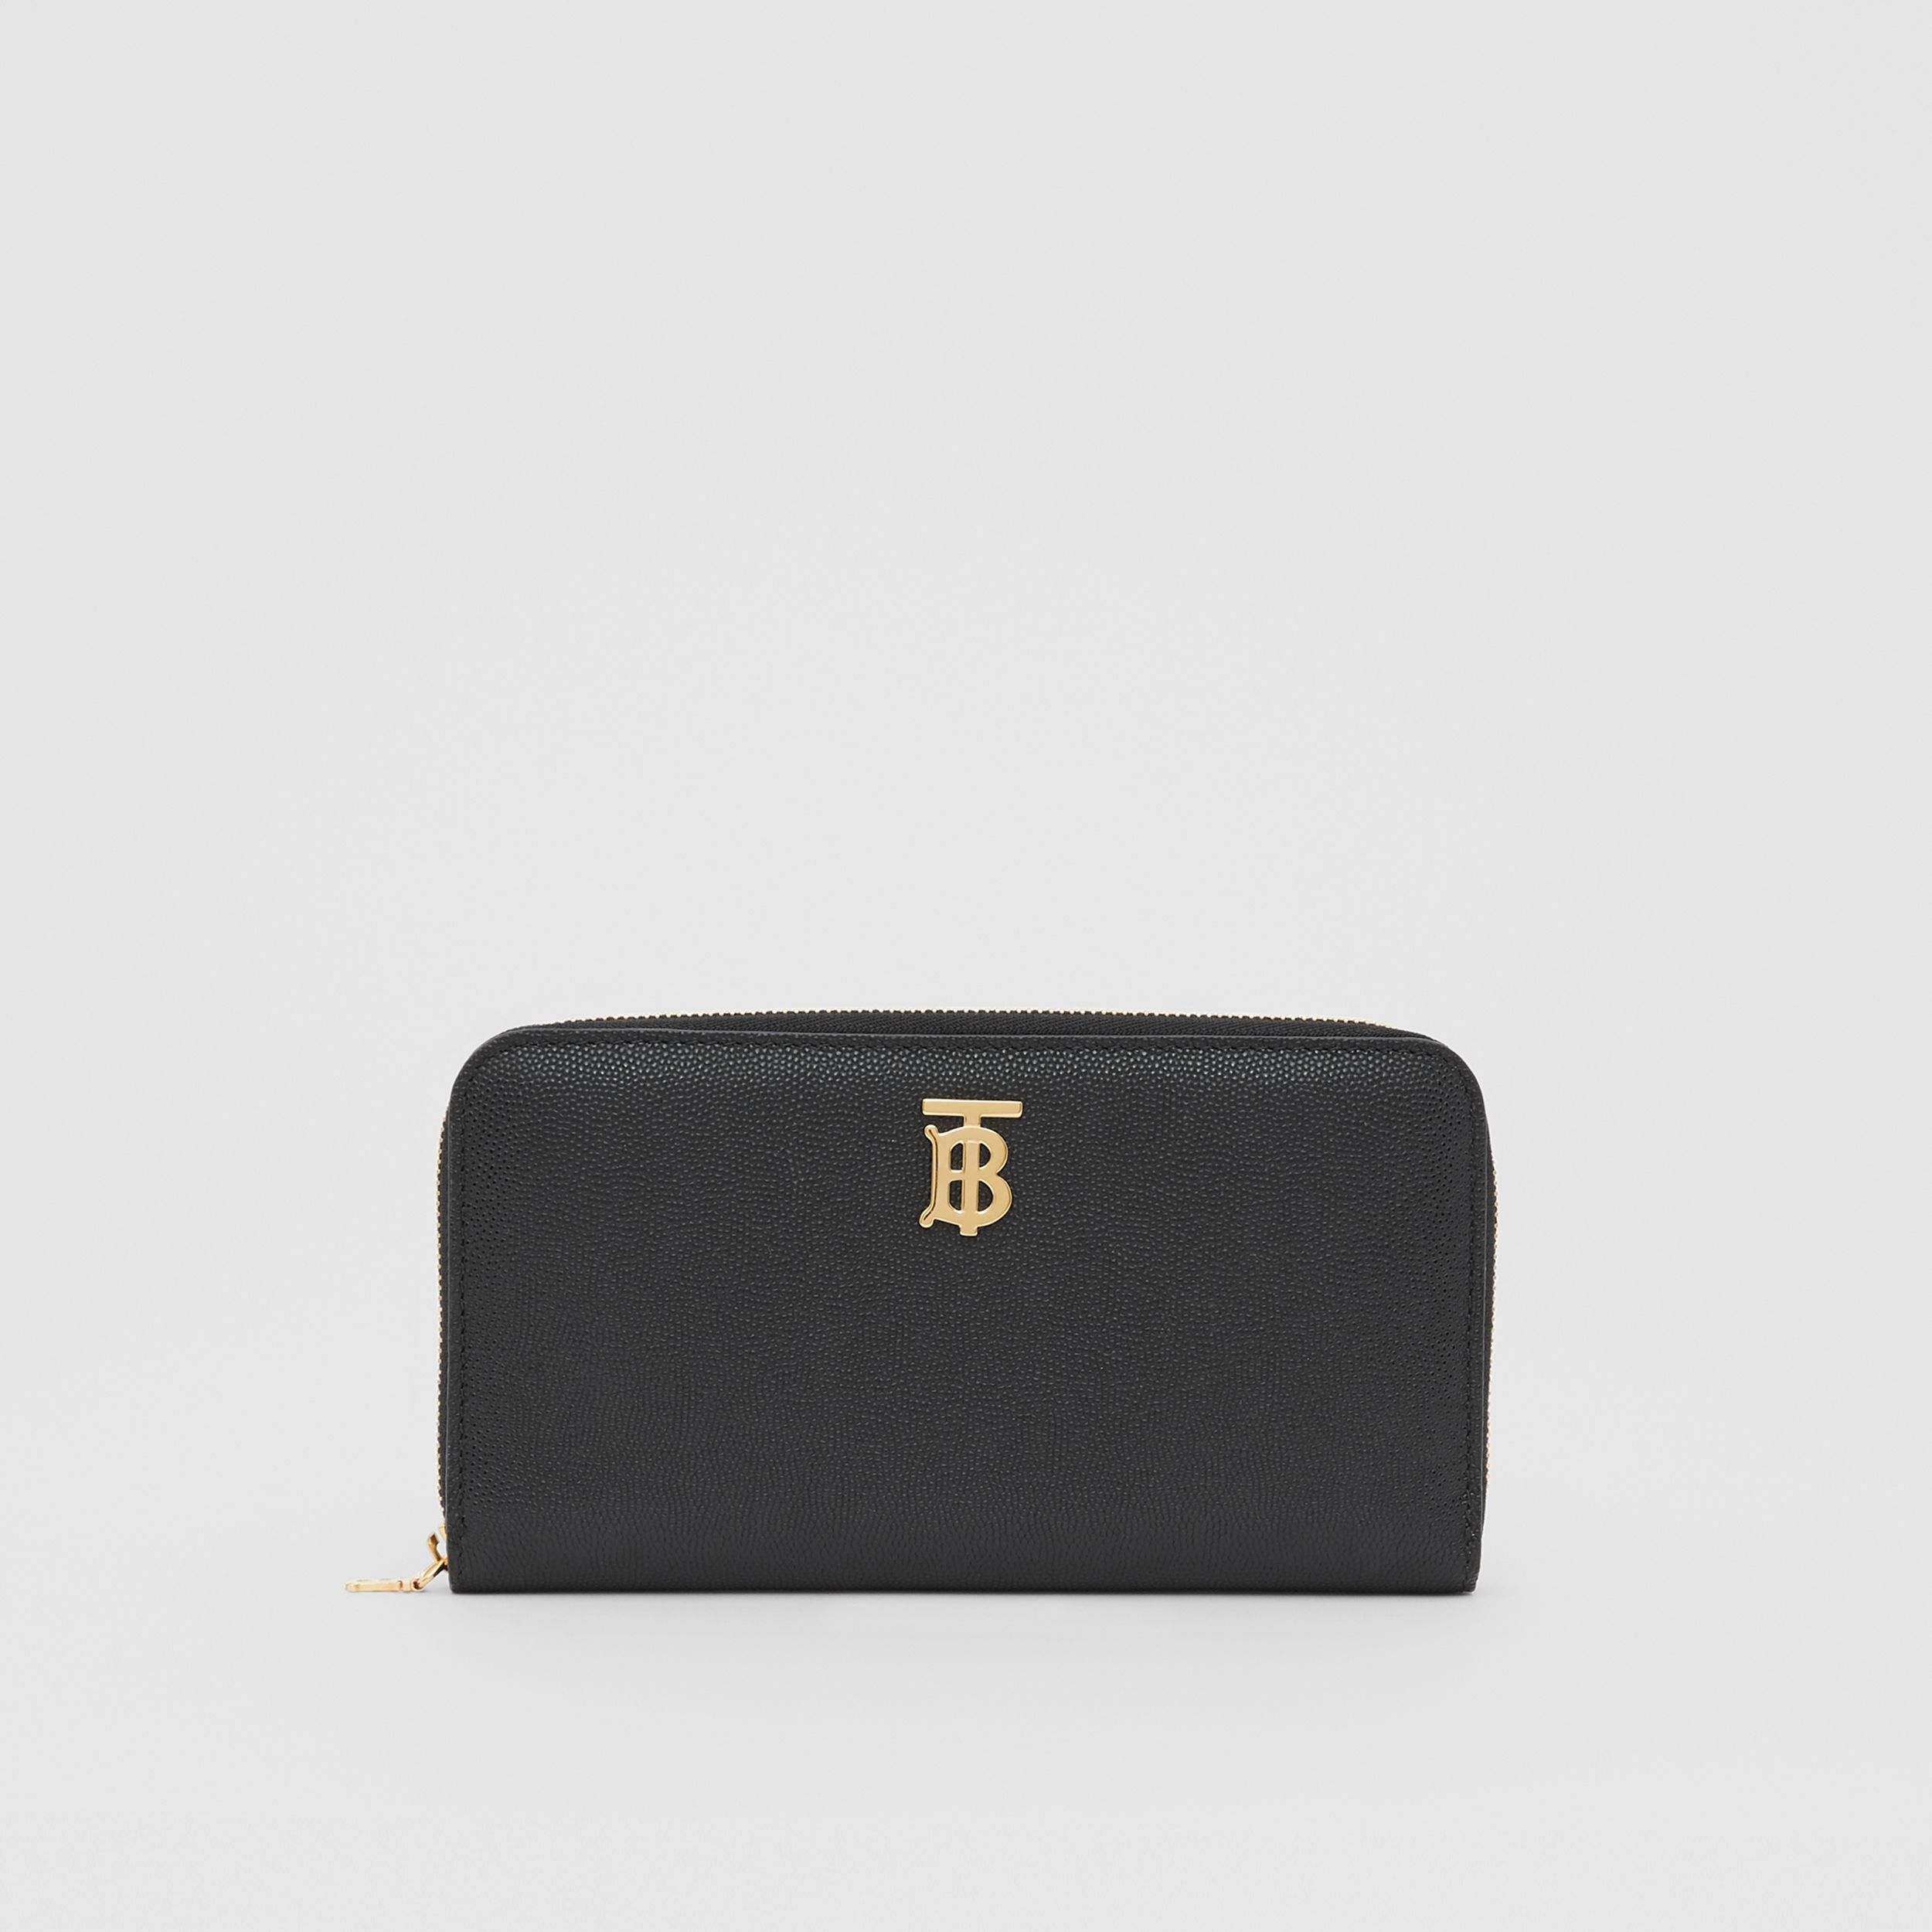 Monogram Motif Grainy Leather Ziparound Wallet in Black - Women | Burberry - 1